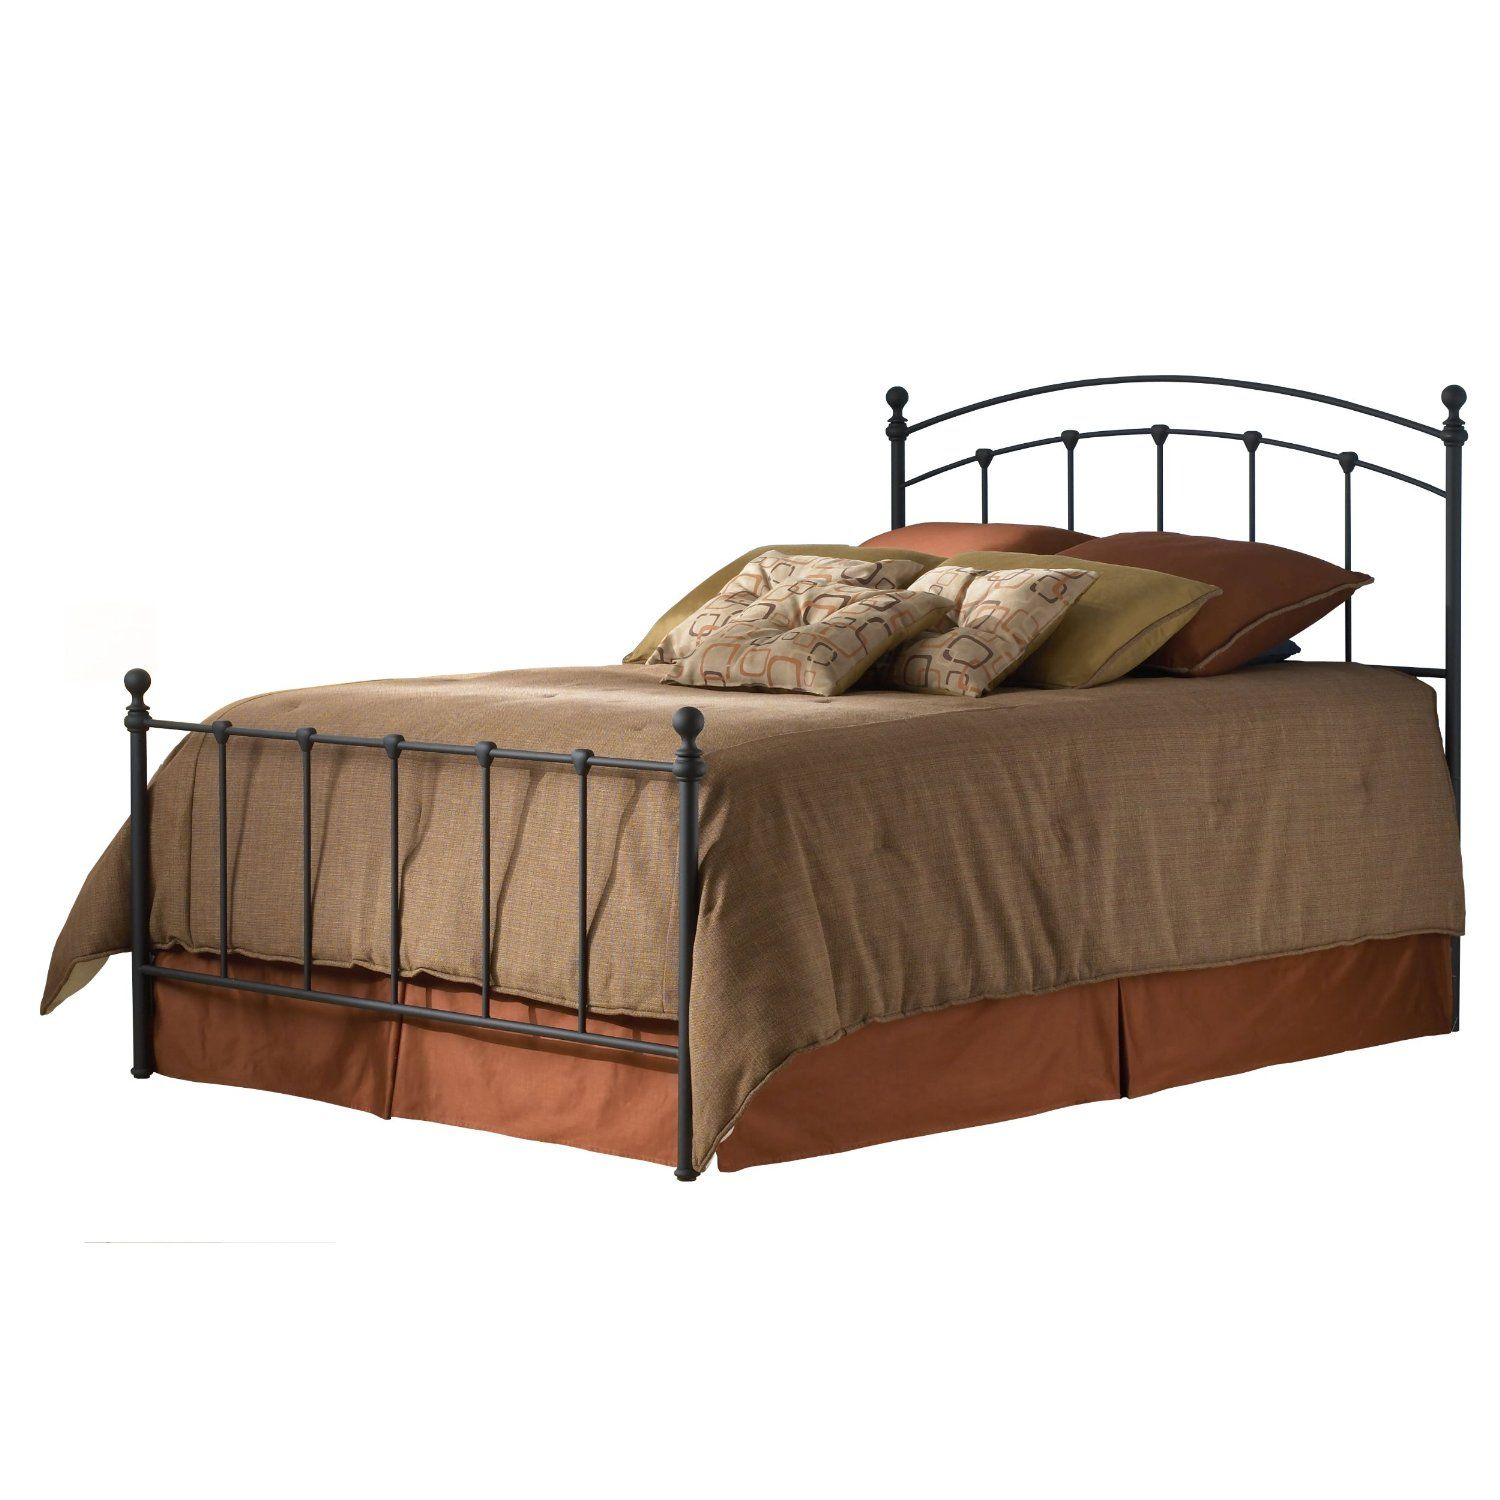 Amazing Wrought Iron Beds That Can Be Found On Amazon Sign Me Up